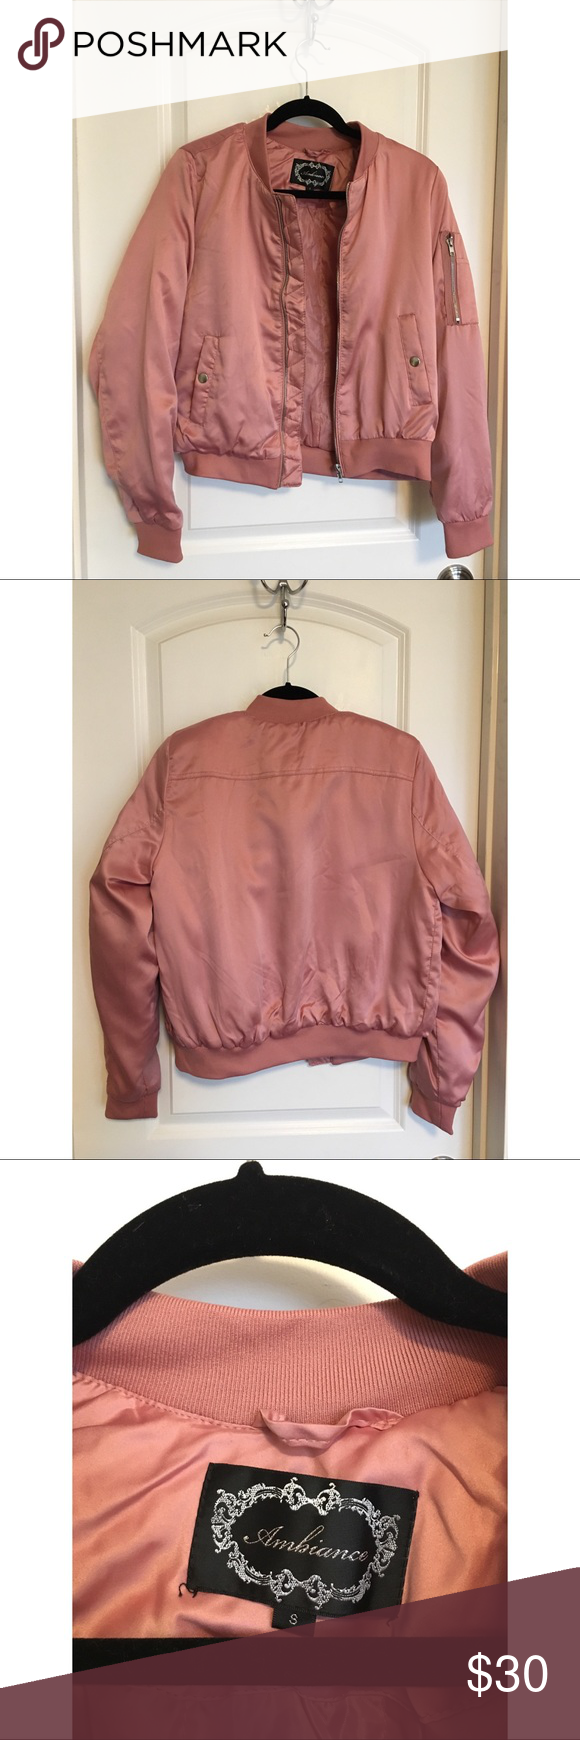 Pretty Pink Bomber Jacket Bomber Jacket In A Pretty Soft Pink Color Soft And Pretty Warm Barely Worn Ambiance Jacke Pink Bomber Jacket Bomber Jacket Jackets [ 1740 x 580 Pixel ]